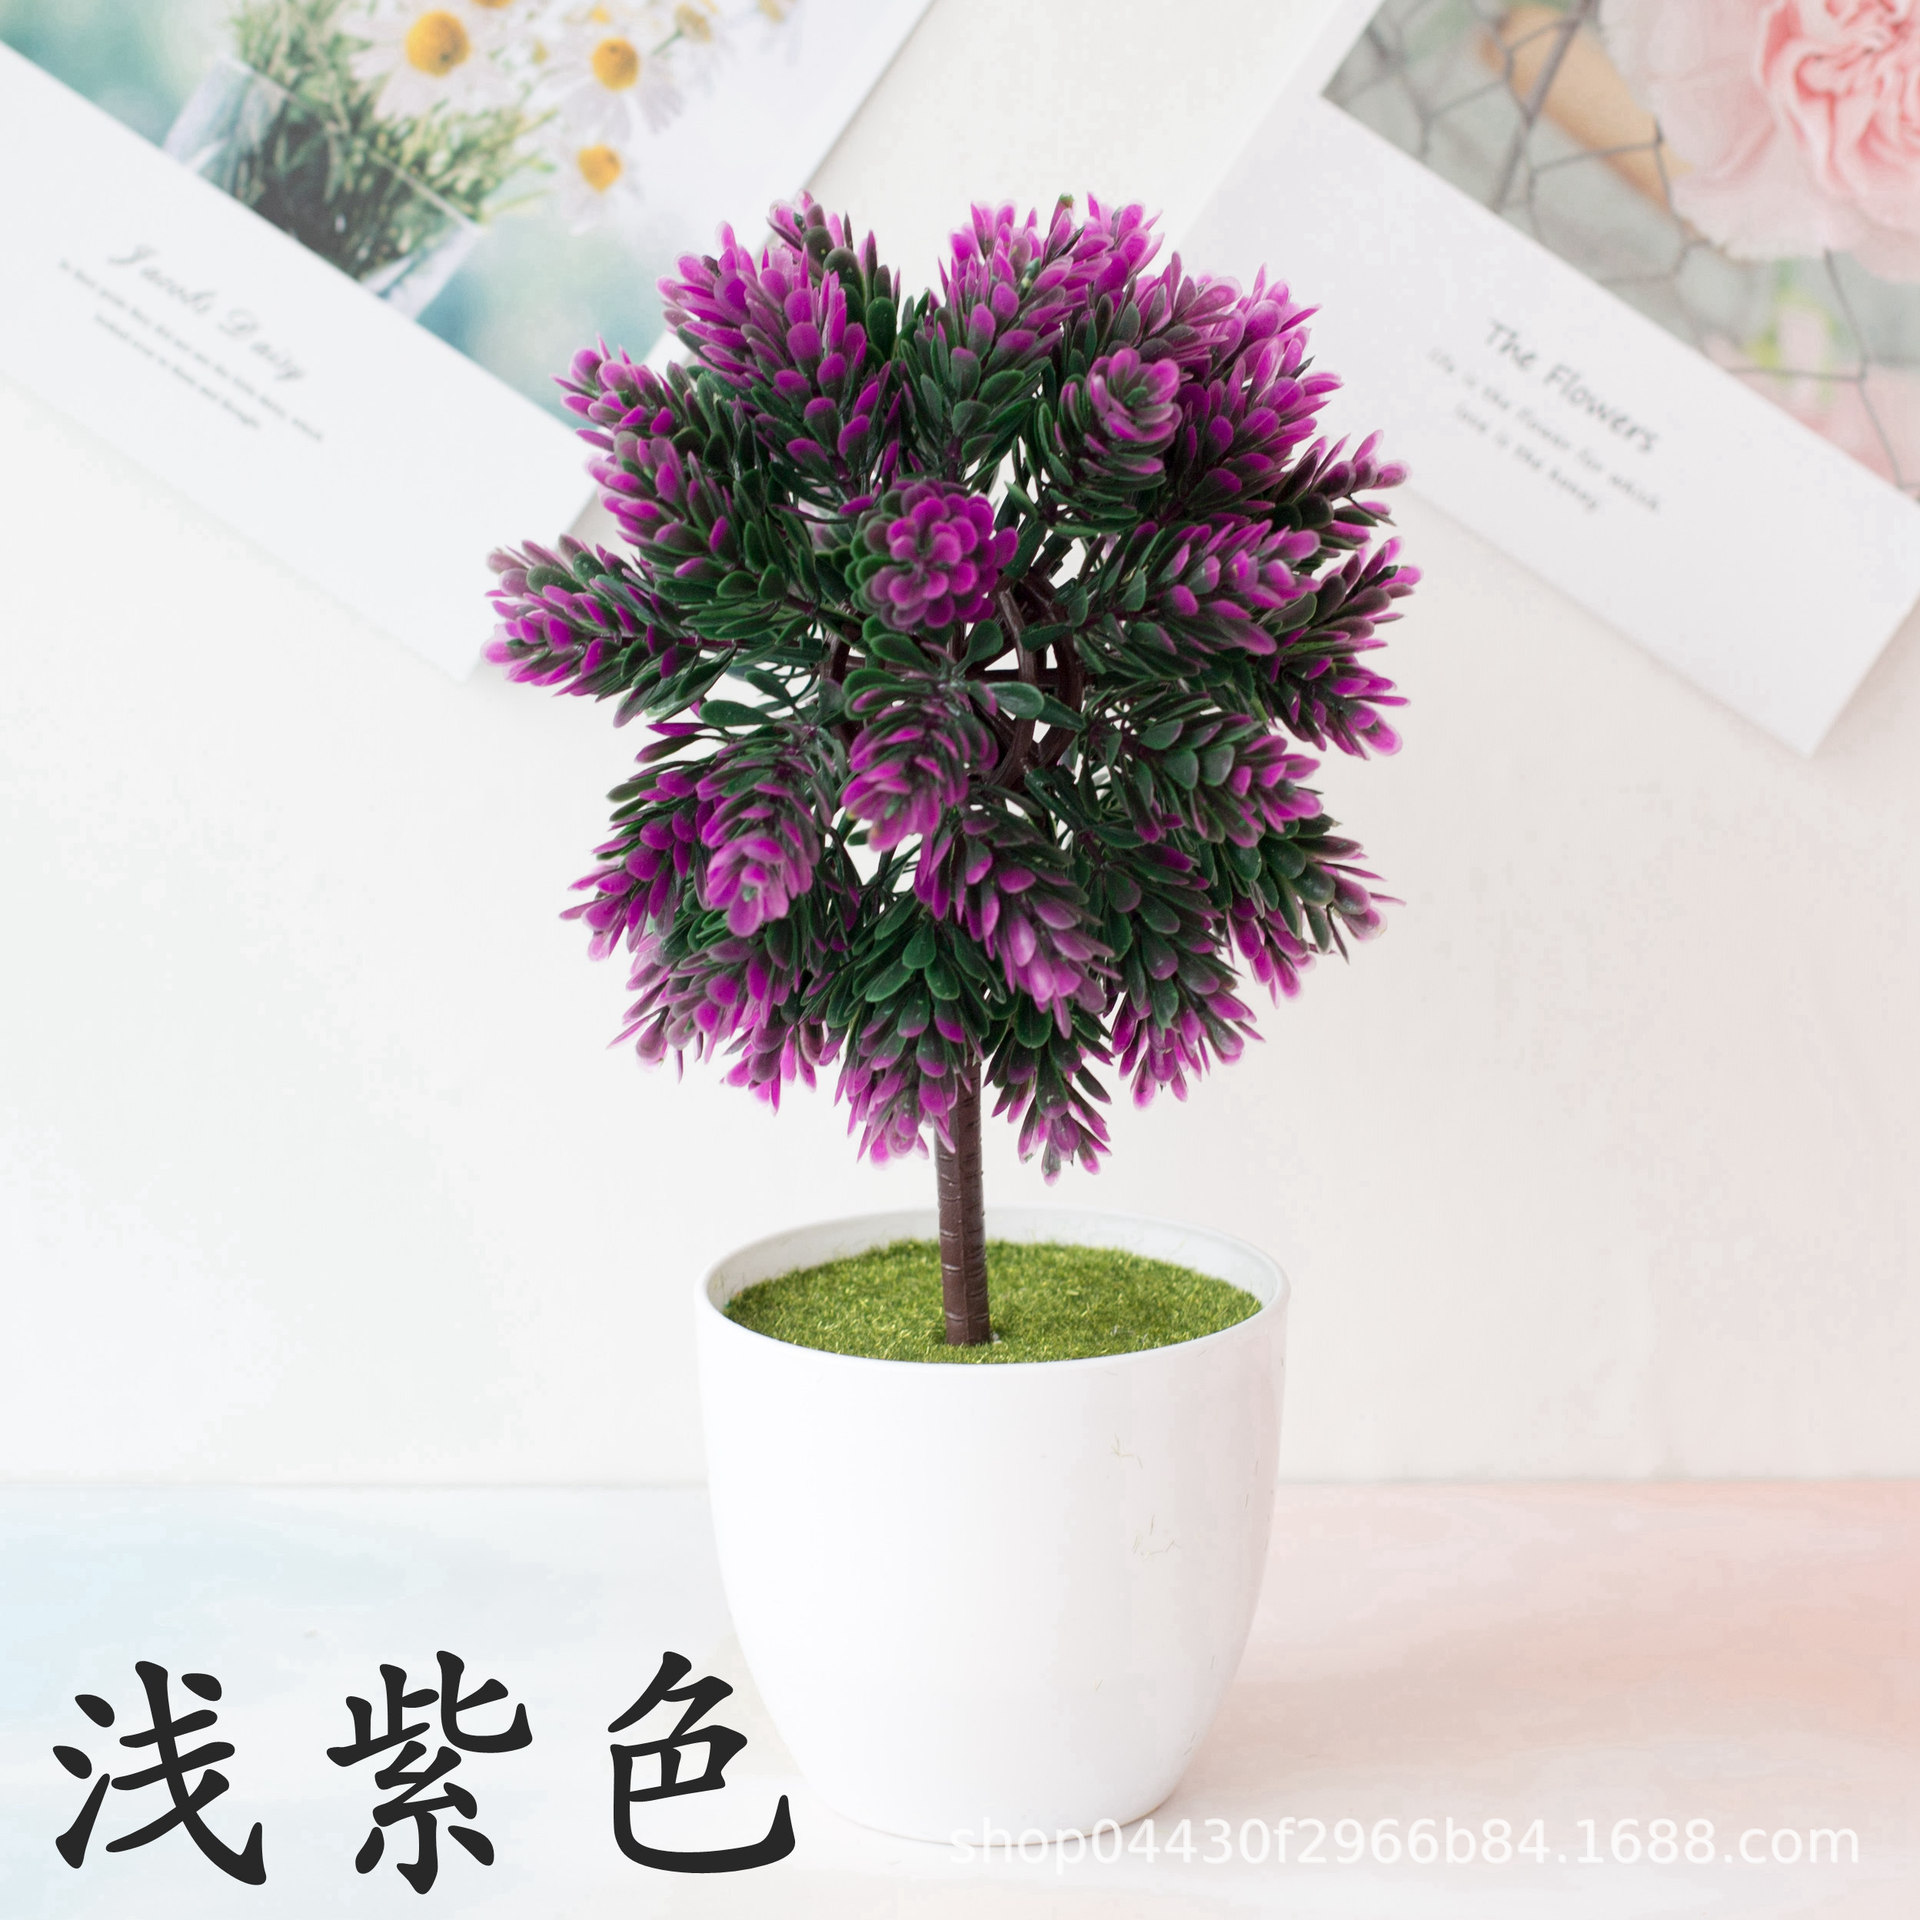 New 1Pcs Artificial Plants Bonsai Small Tree with Pot HTB1w561eRGE3KVjSZFhq6AkaFXaL Artificial Plants